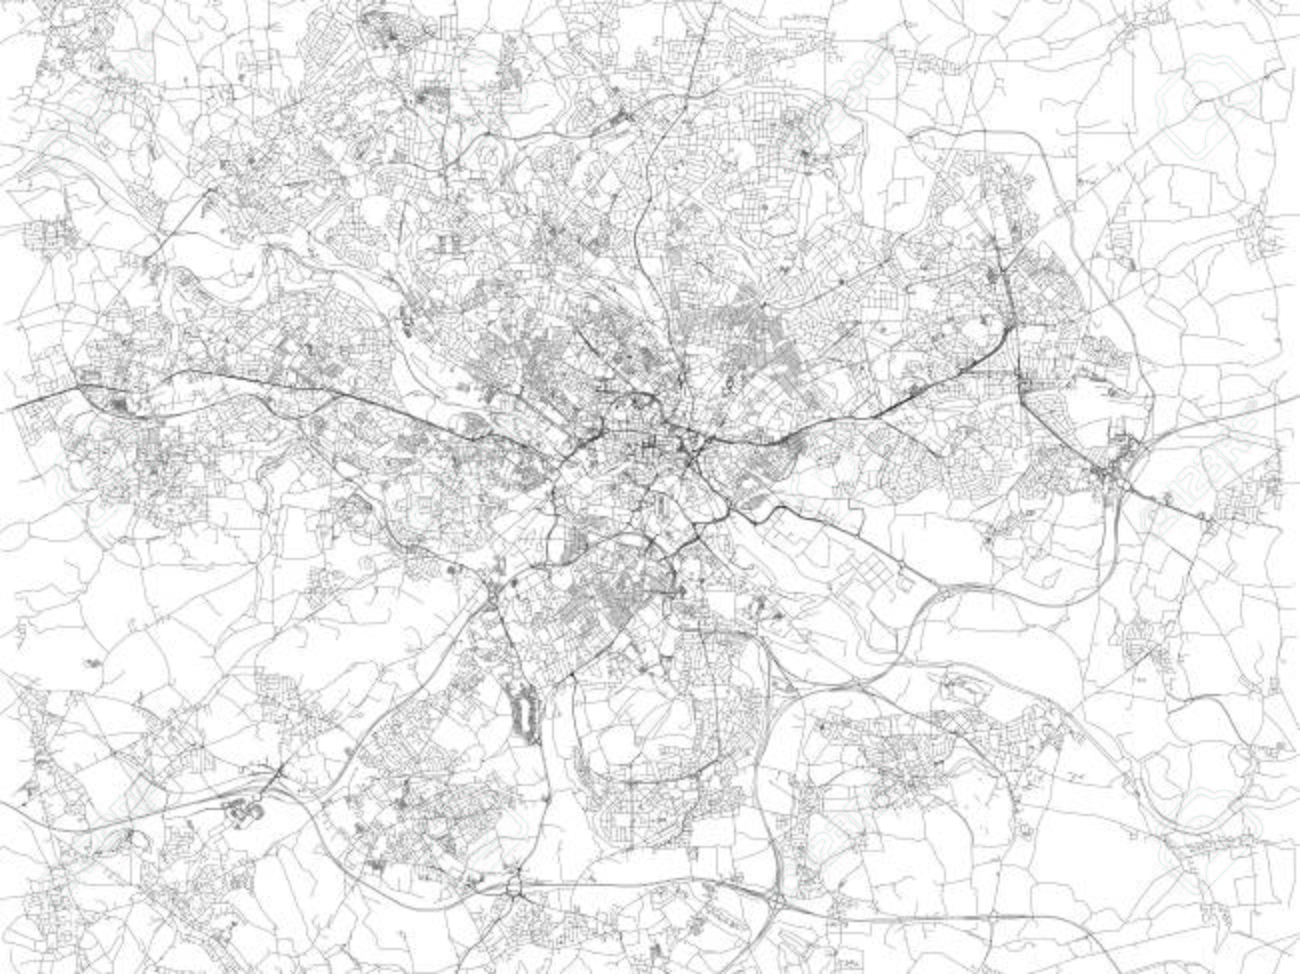 Map of Leeds, satellite view of the city, streets and houses,.. Satellite Map White House on u.s. white house, curtis smith white house, gyrocopter white house, aerial view white house, map of white house, omar gonzalez white house, power map white house, prince white house, ariana grande white house, satellite maps aerial view of my home, lincoln's white house, front door colors for white house, first white house, barvetta singletary white house, rainbow colored white house, rihanna white house, satellite view house by address, ciara white house, 2015 white house, street map white house,